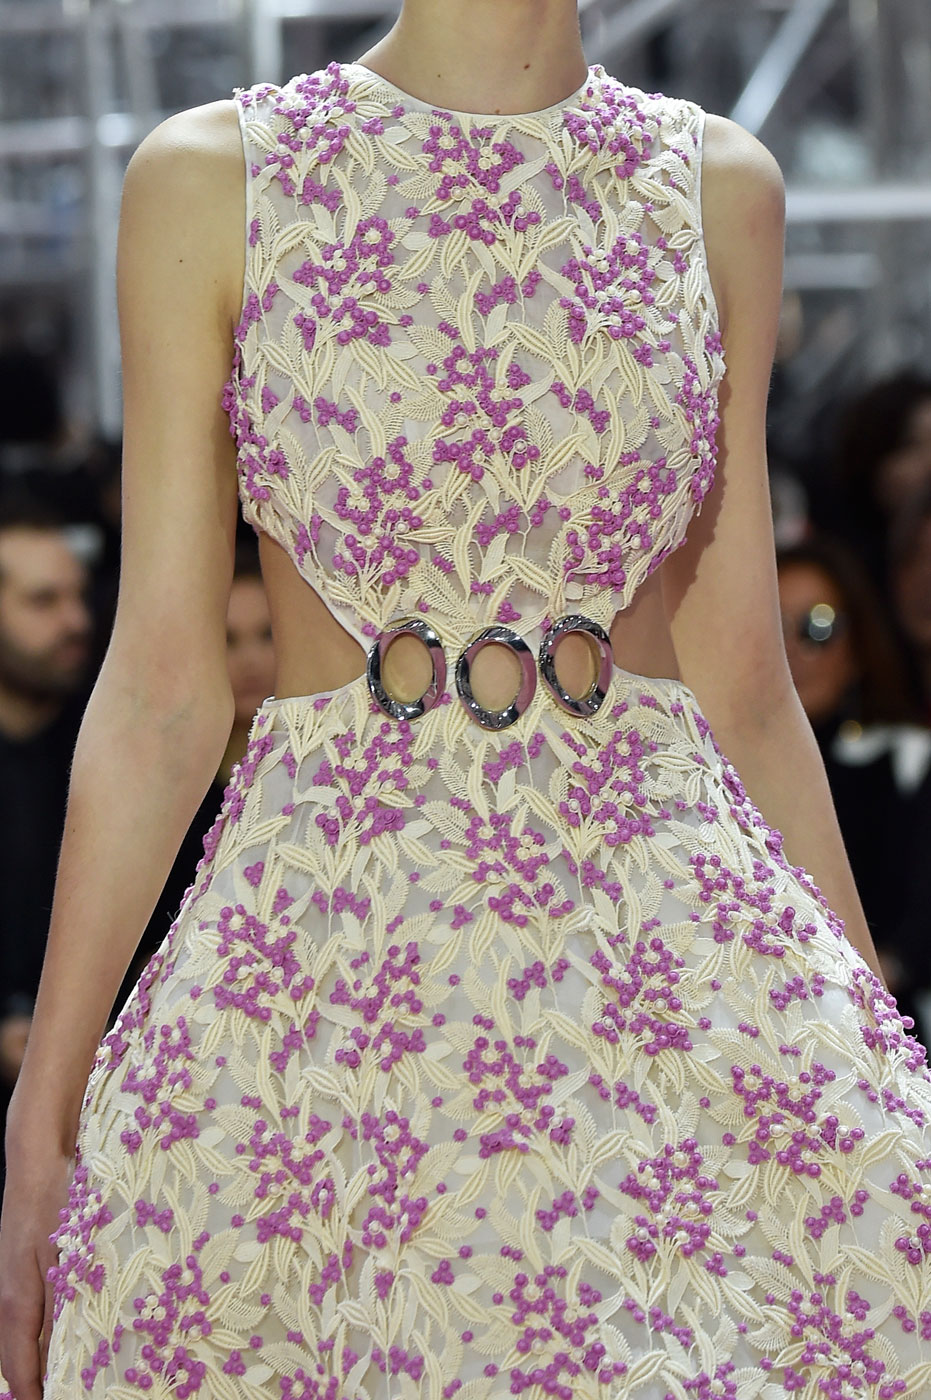 Christian-Dior-fashion-runway-show-close-ups-haute-couture-paris-spring-summer-2015-the-impression-057